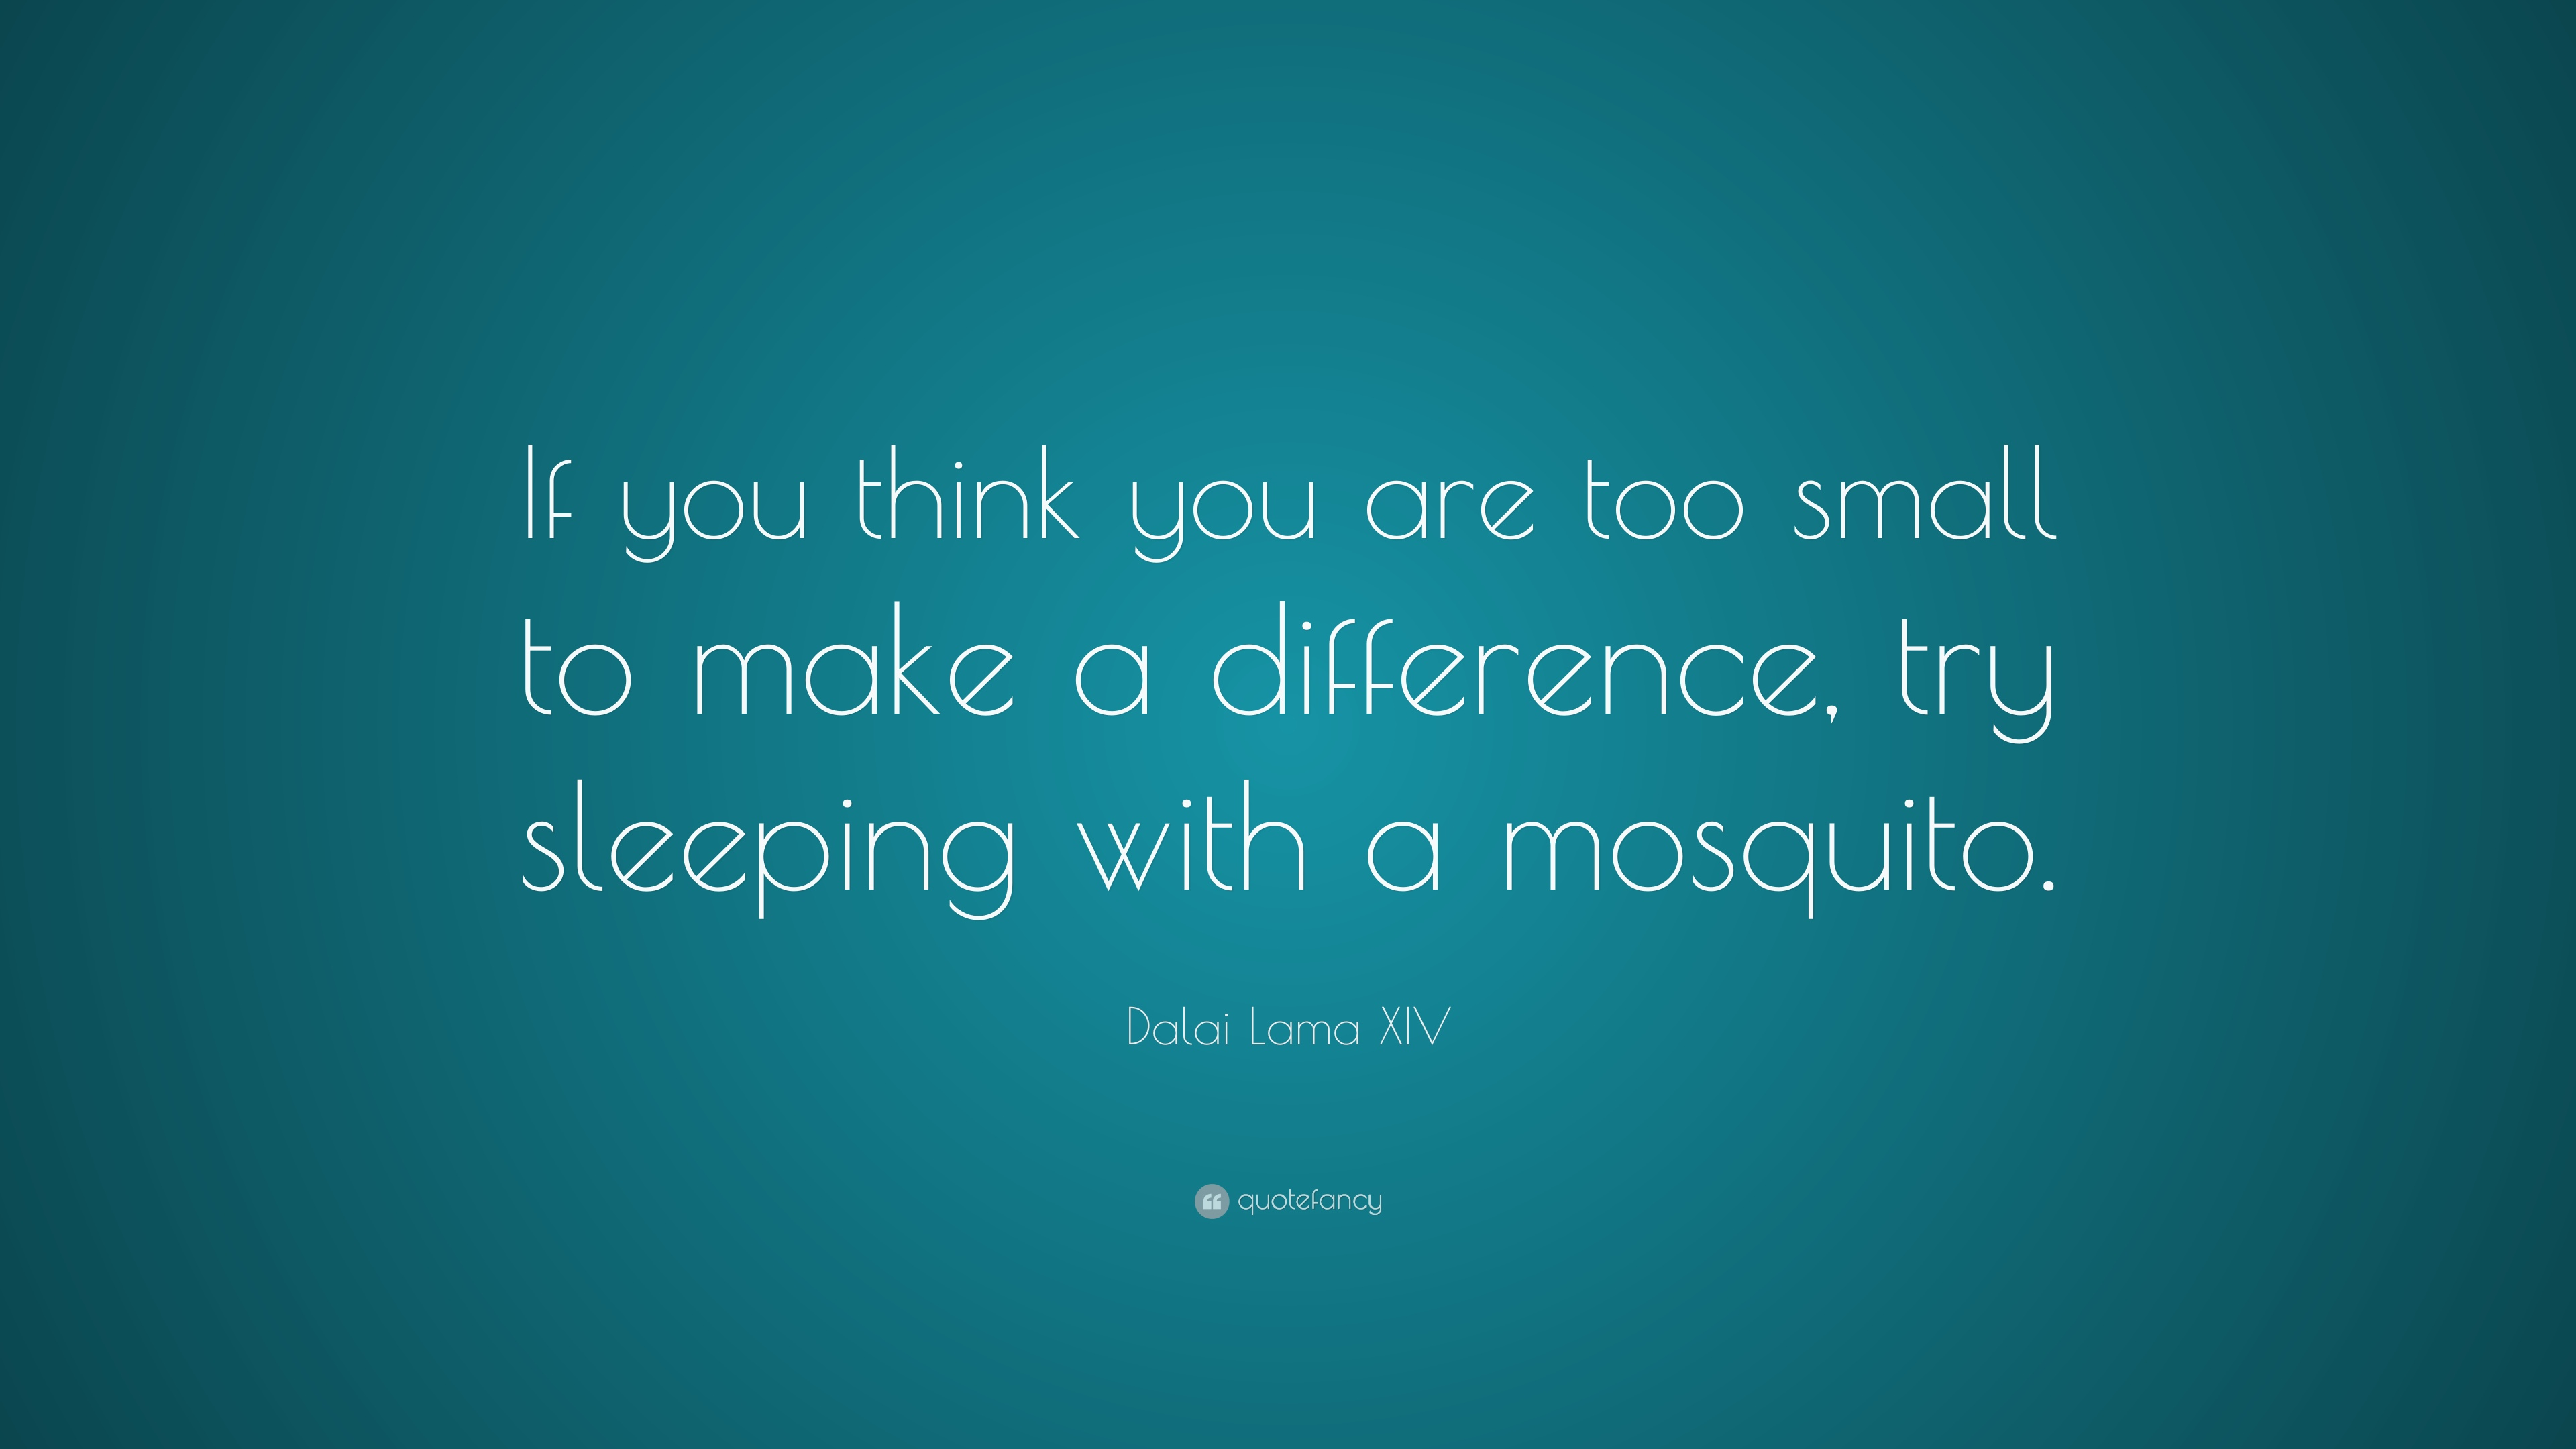 Dalai Lama Xiv Quote If You Think You Are Too Small To Make A